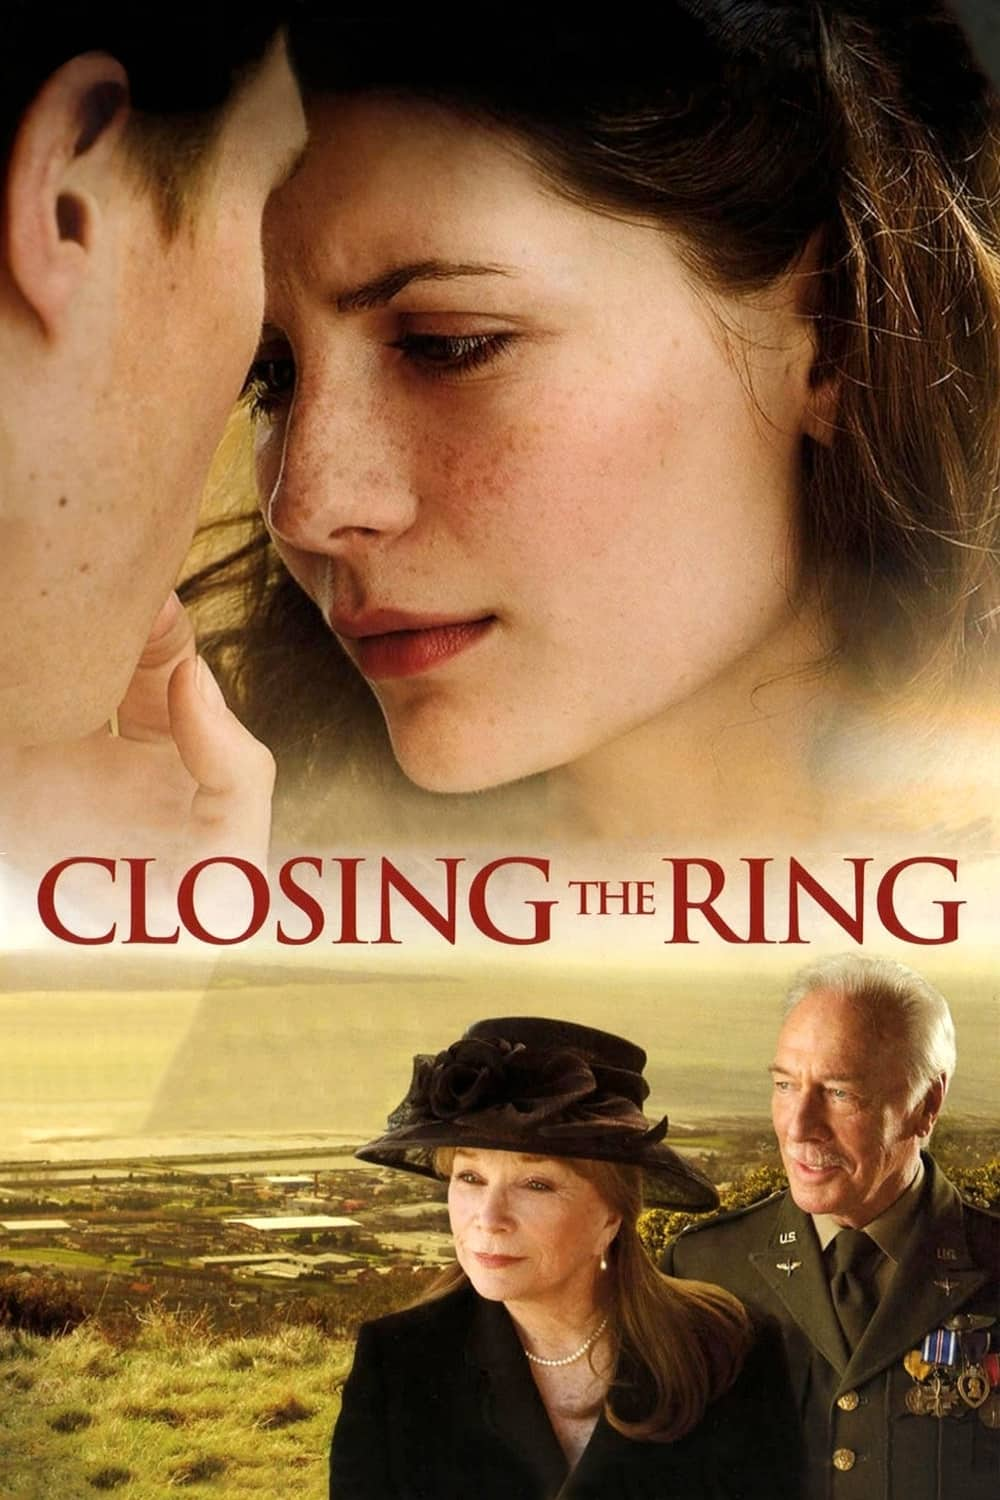 Closing the Ring, 2007